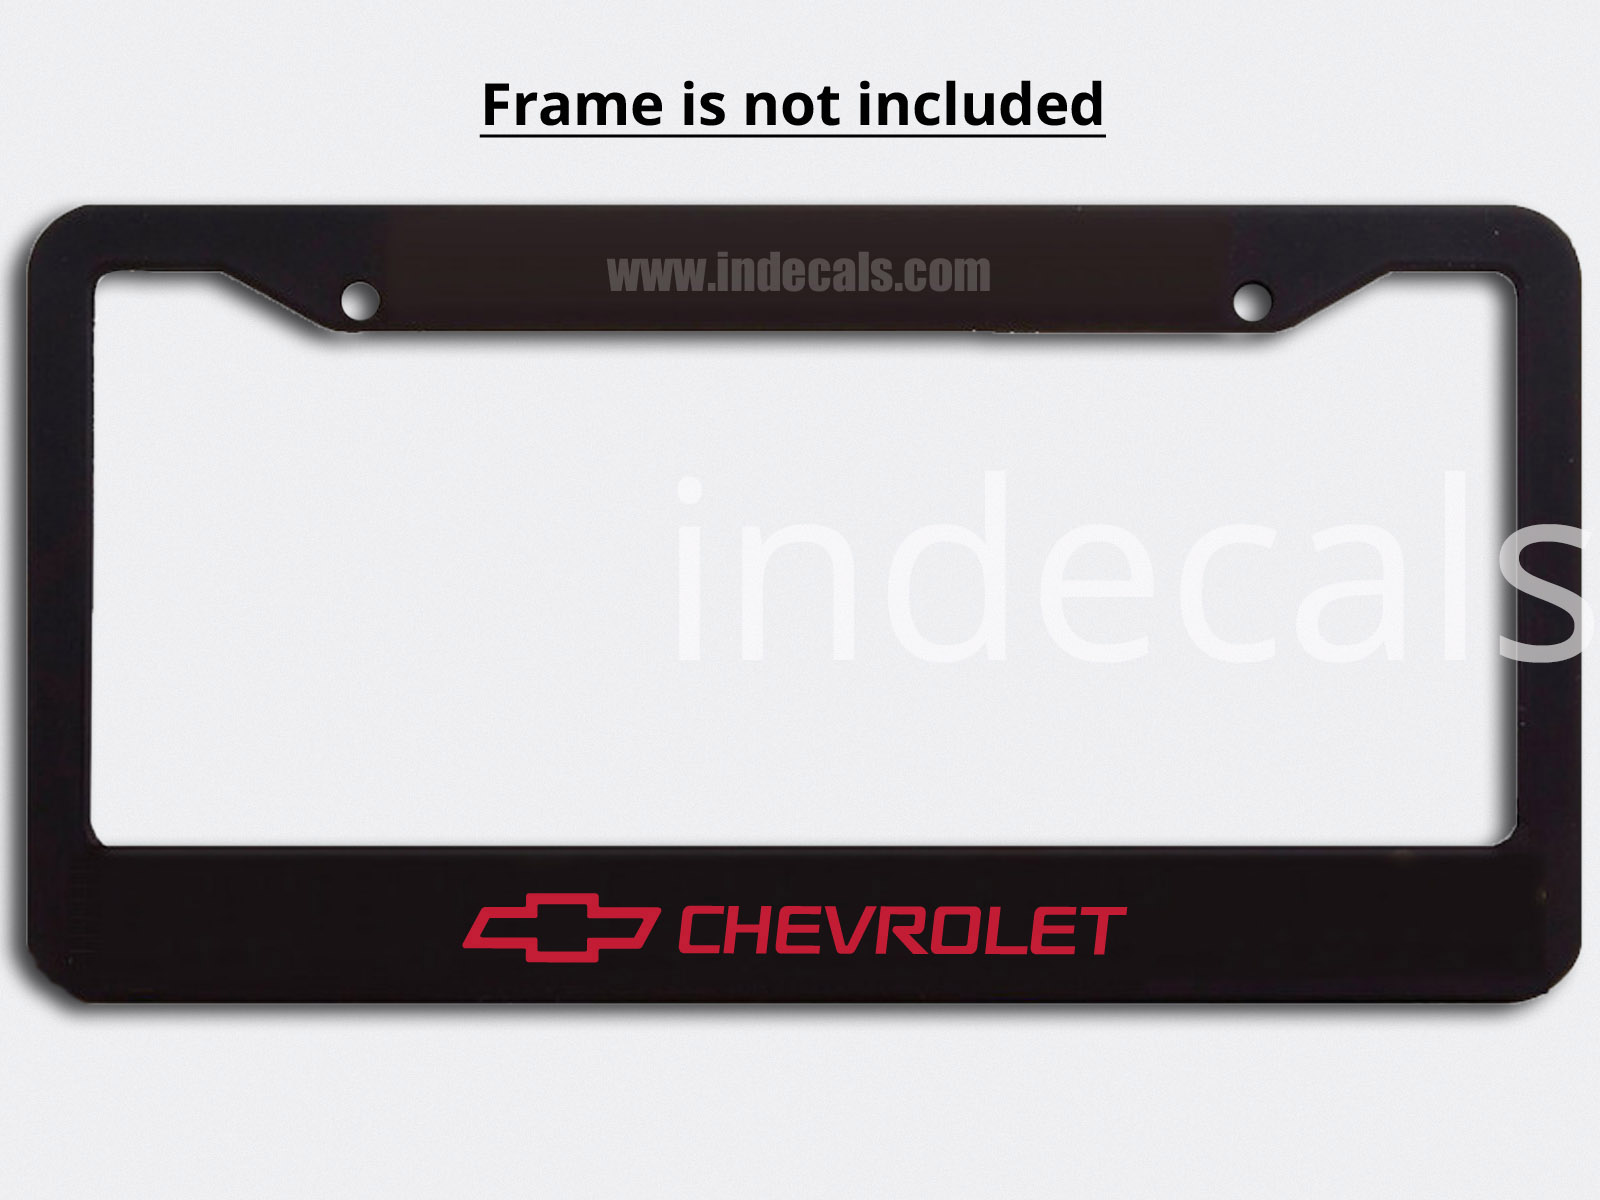 3 x Chevrolet Stickers for Plate Frame - Red